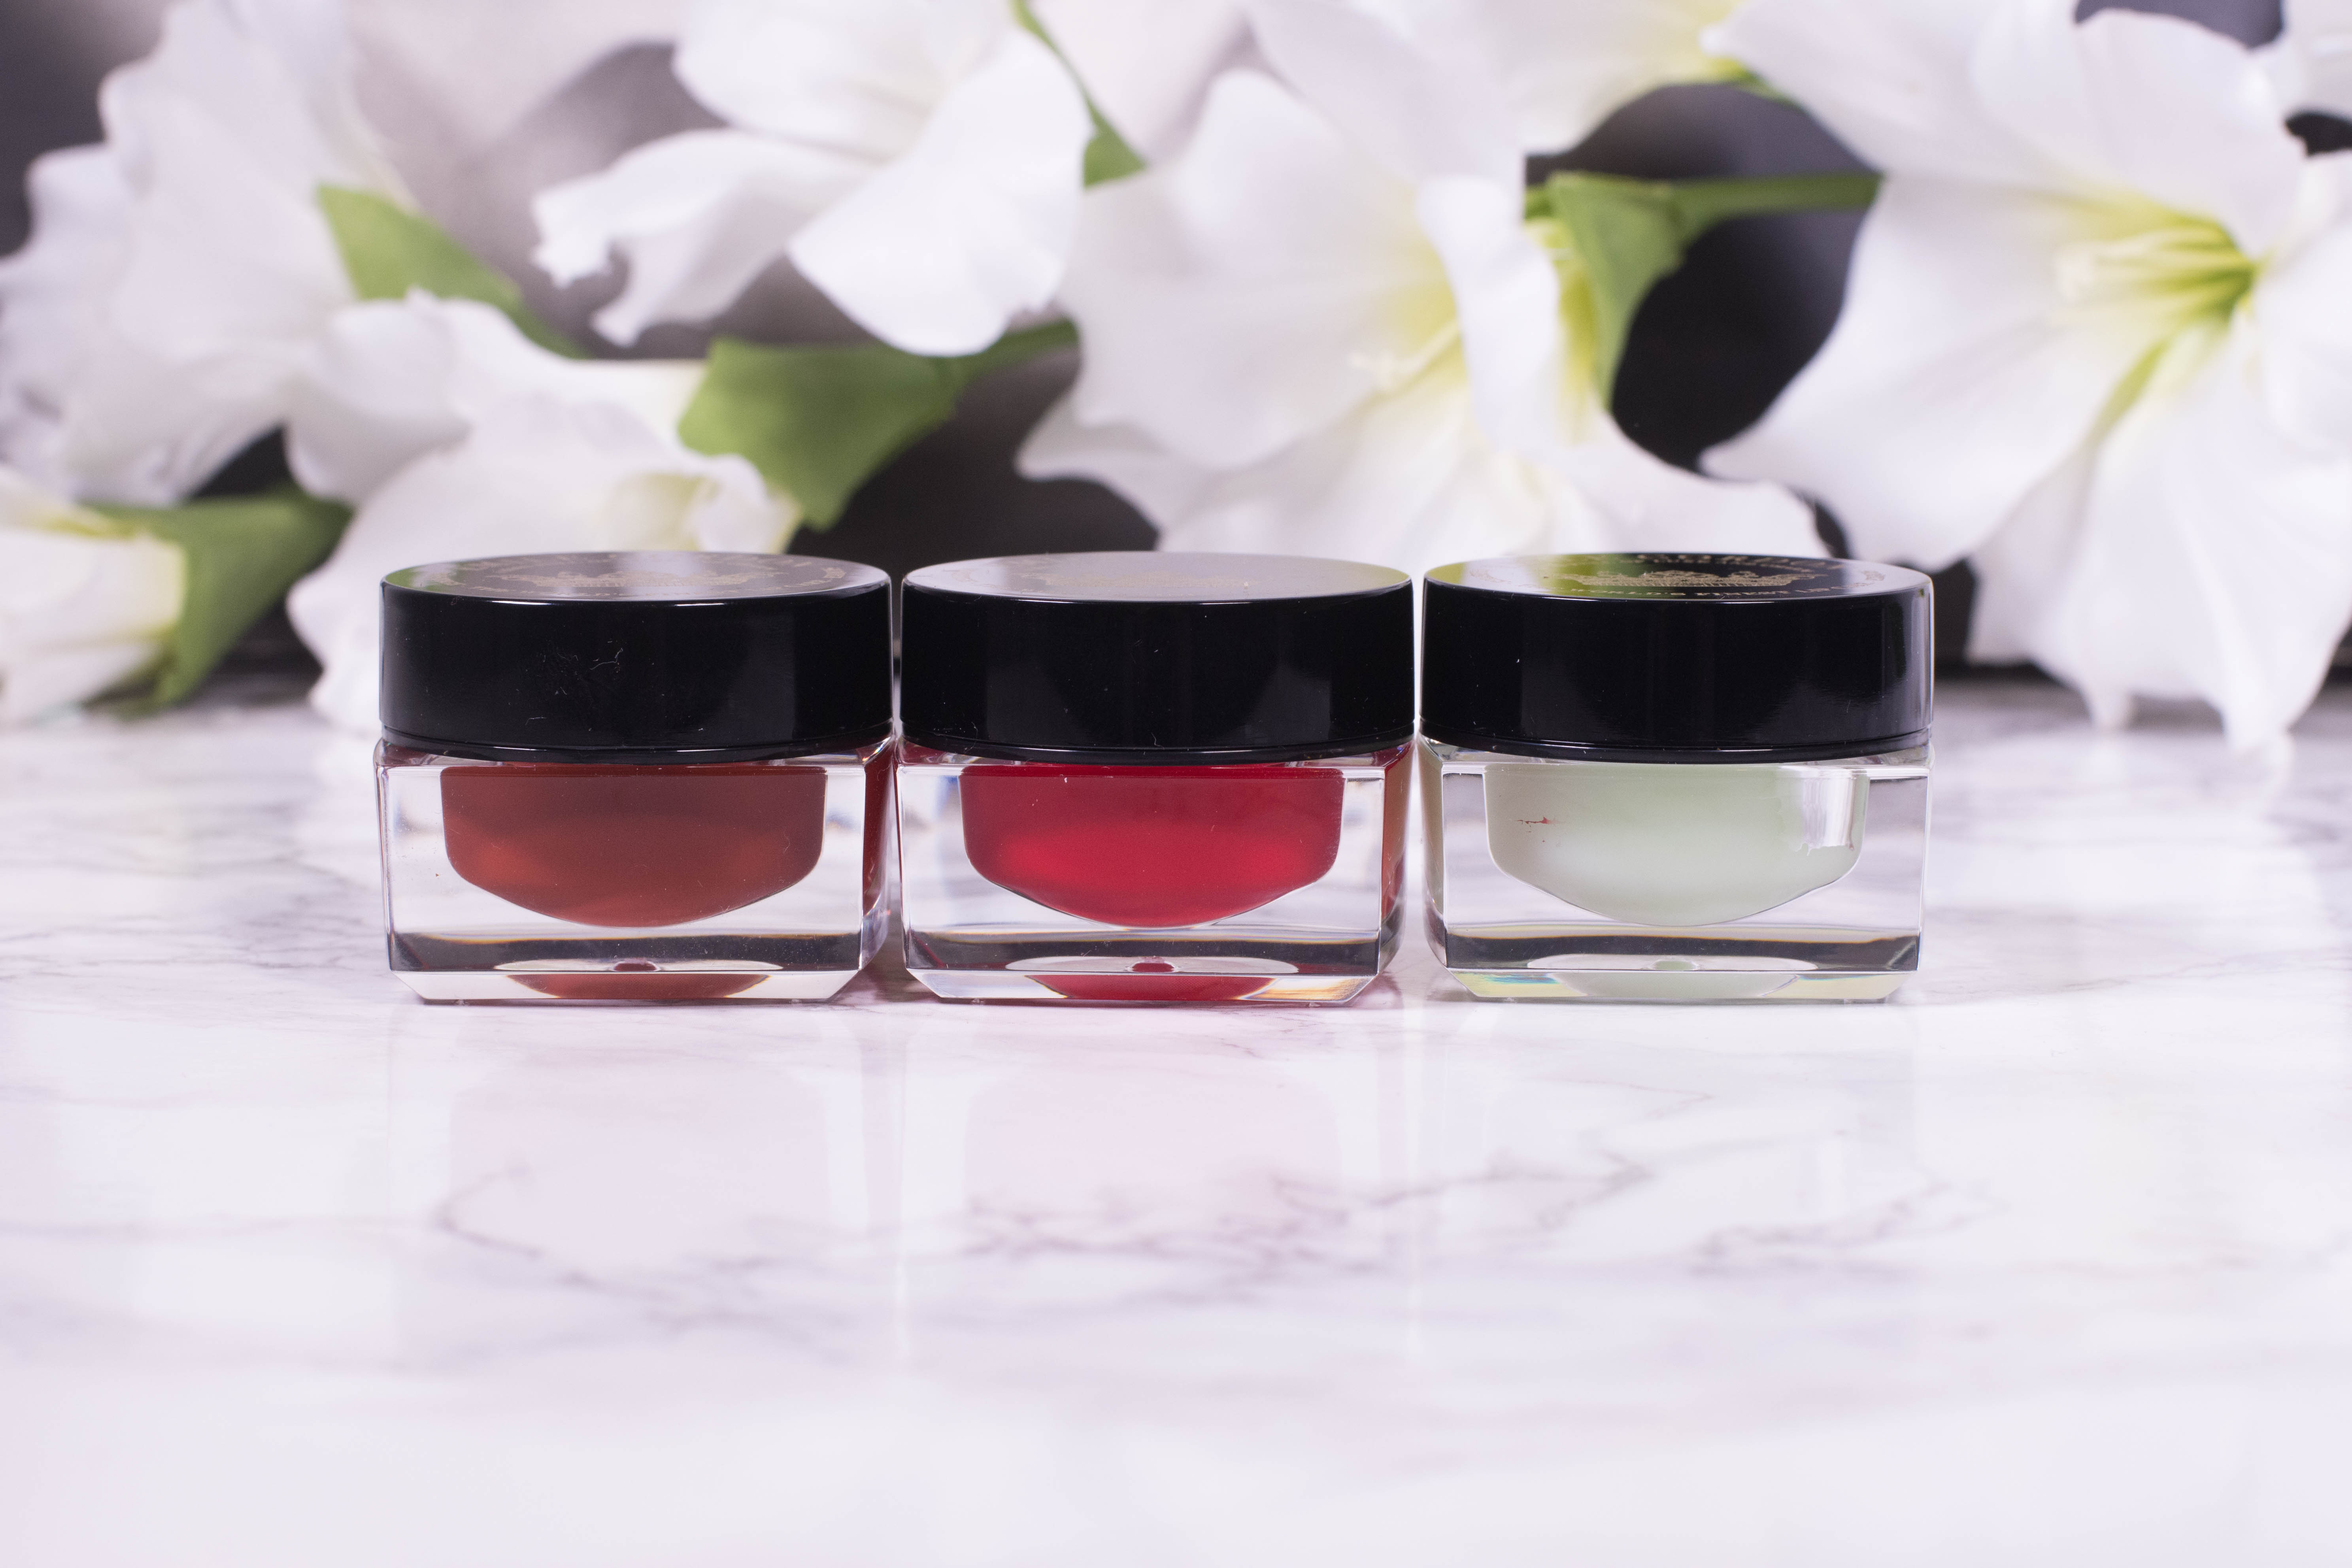 Emile Cordon Miracle Lip Balm in Madison Queen, Charlotte and Moroccan Mint